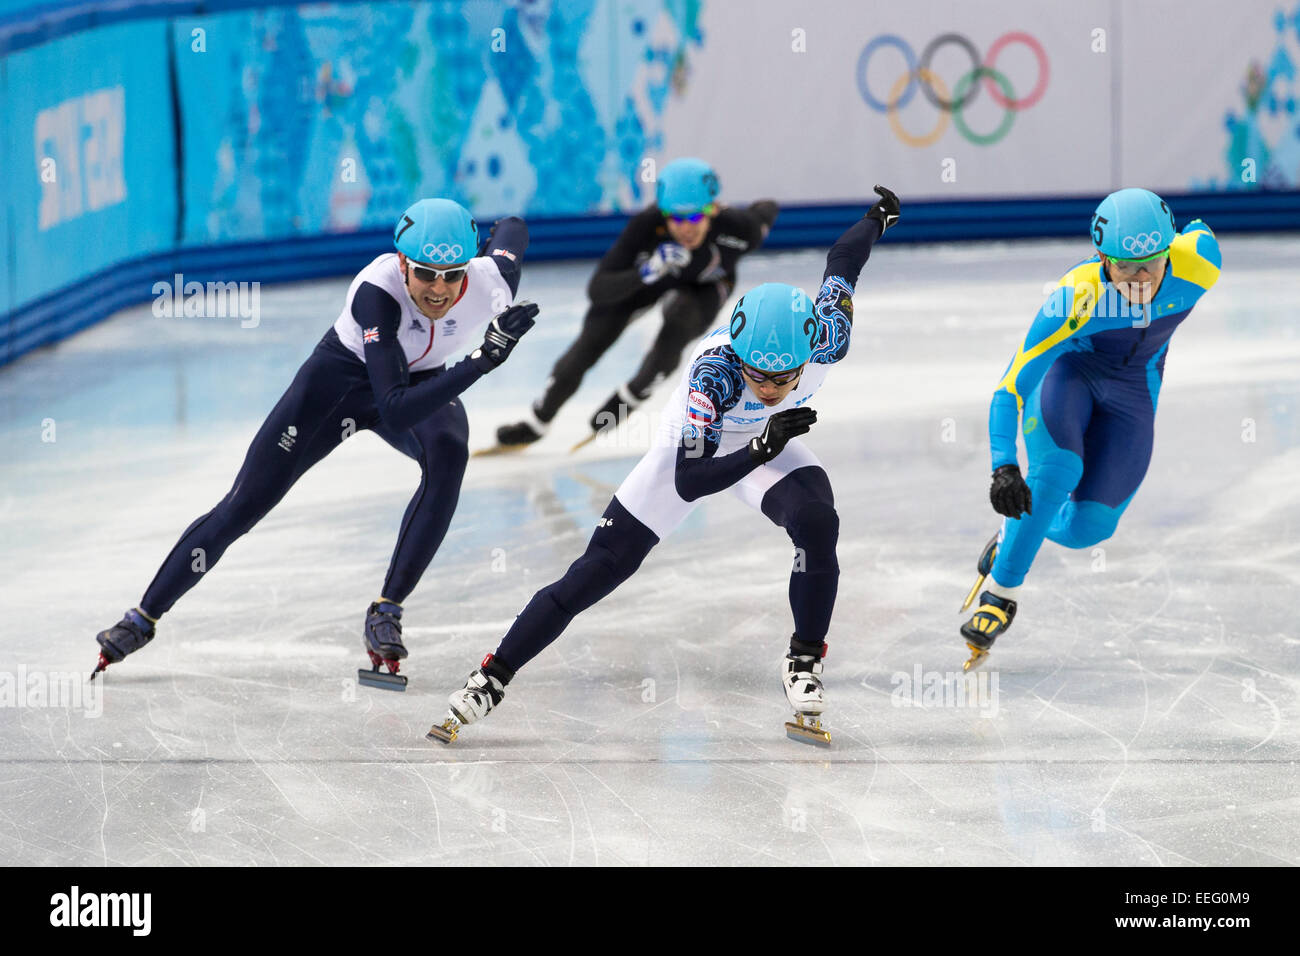 Short Track Speed Skating at the Olympic Winter Games ...